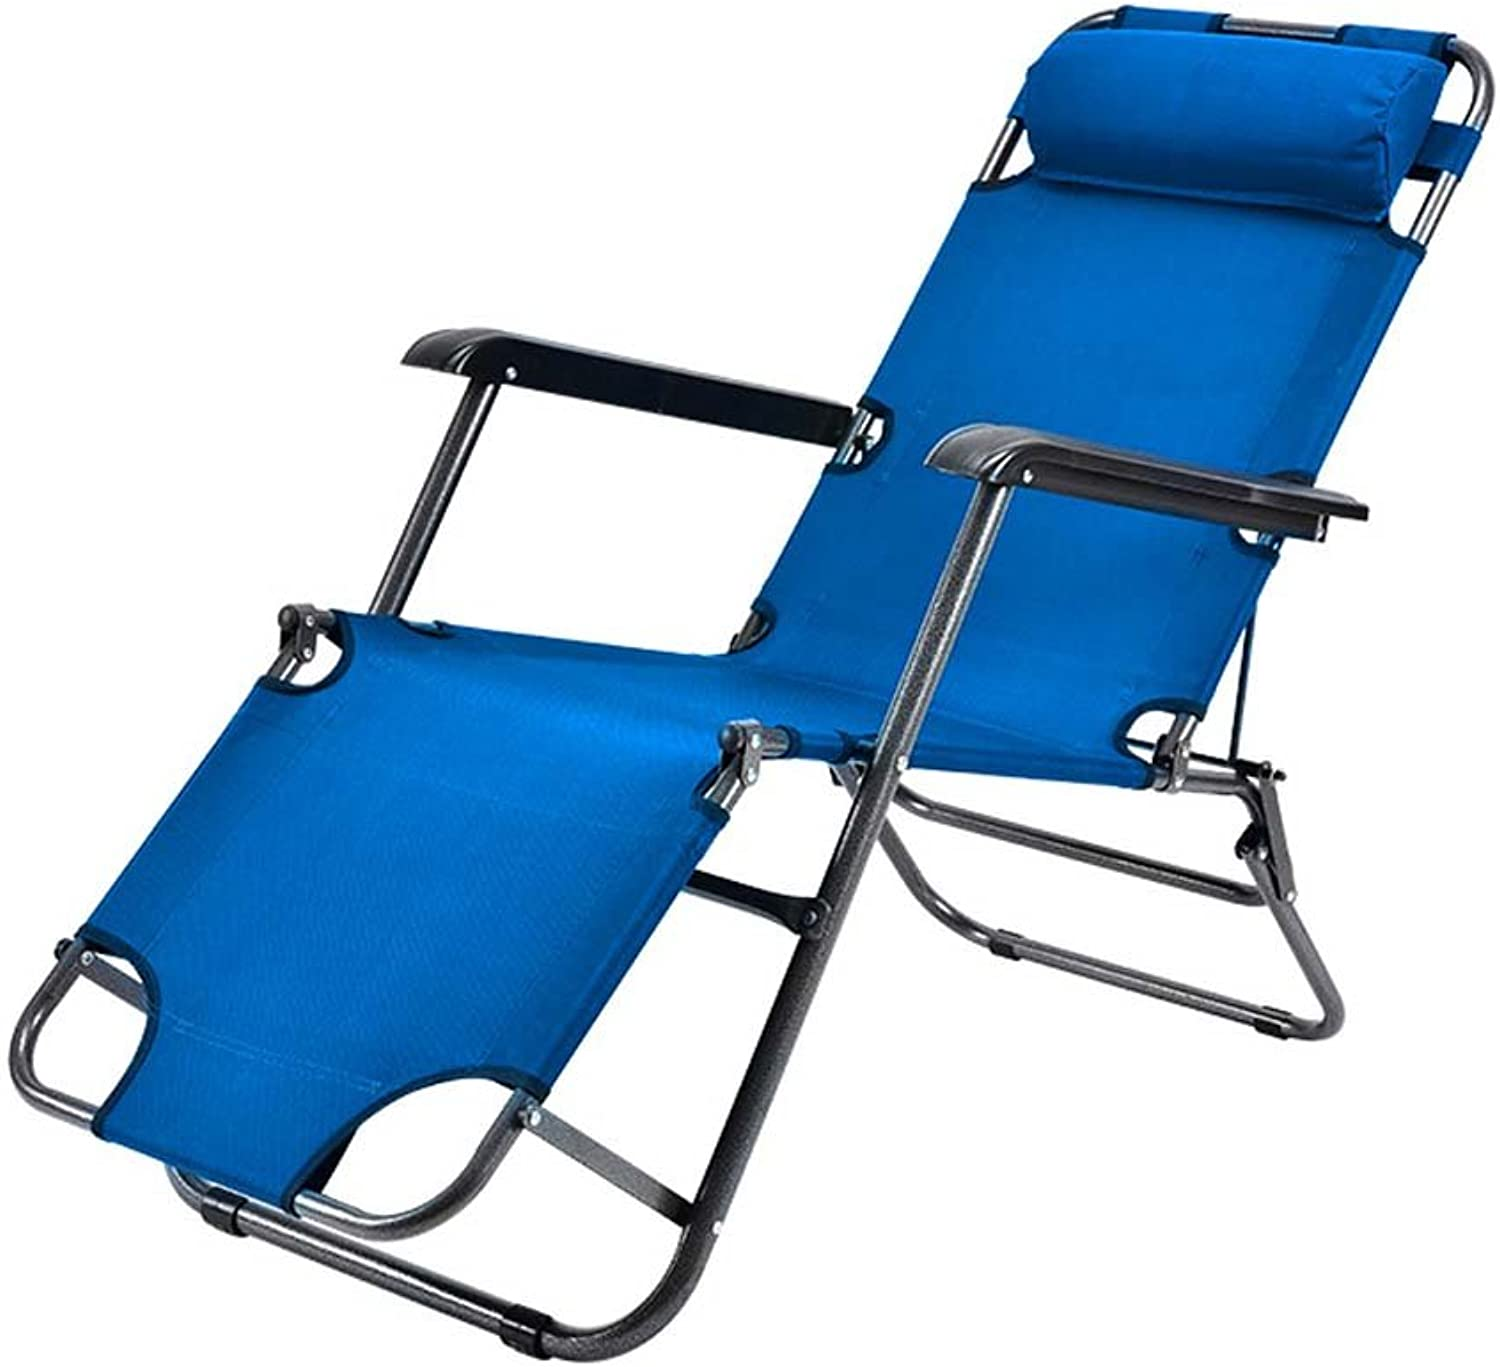 Folding Chair Folding Chair Multifunction Lunch Break Office Siesta Bed Chair Rest Bed Portable Bed Sleep Chair Household Folding Chairs Beach Chairs (color   Navy blueee)